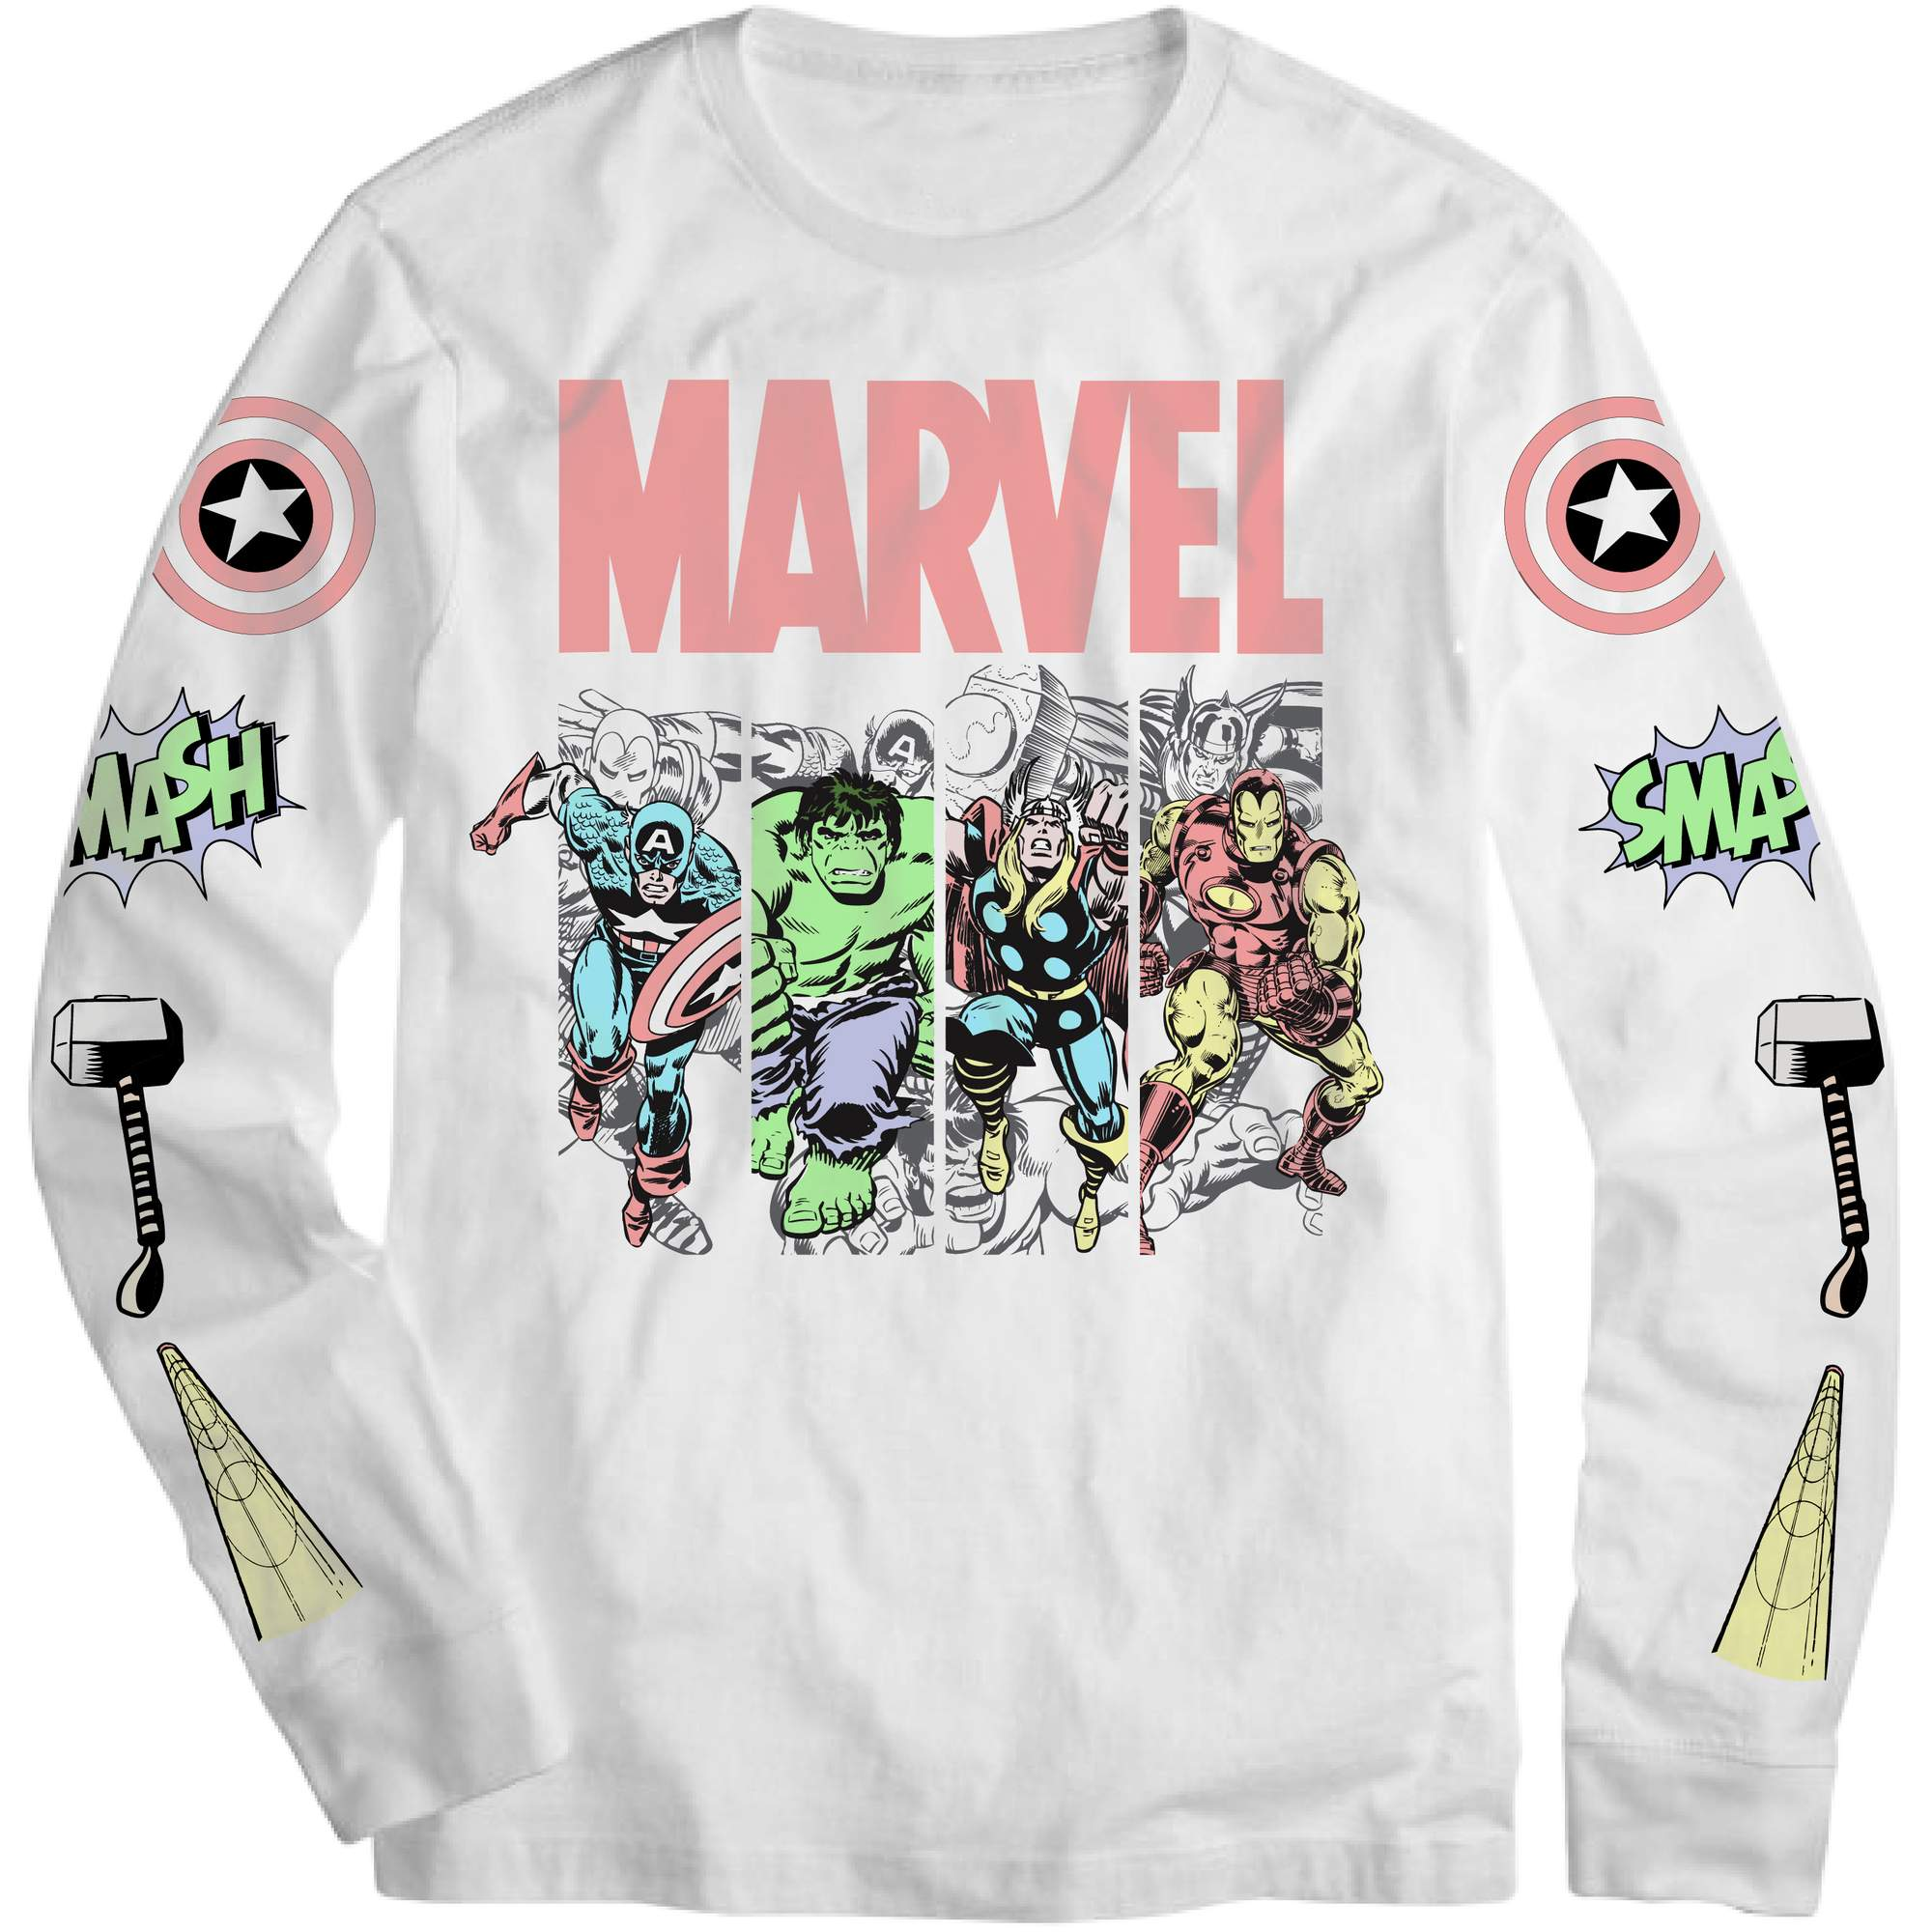 Marvel Heroes White Long Sleeve Graphic Tee